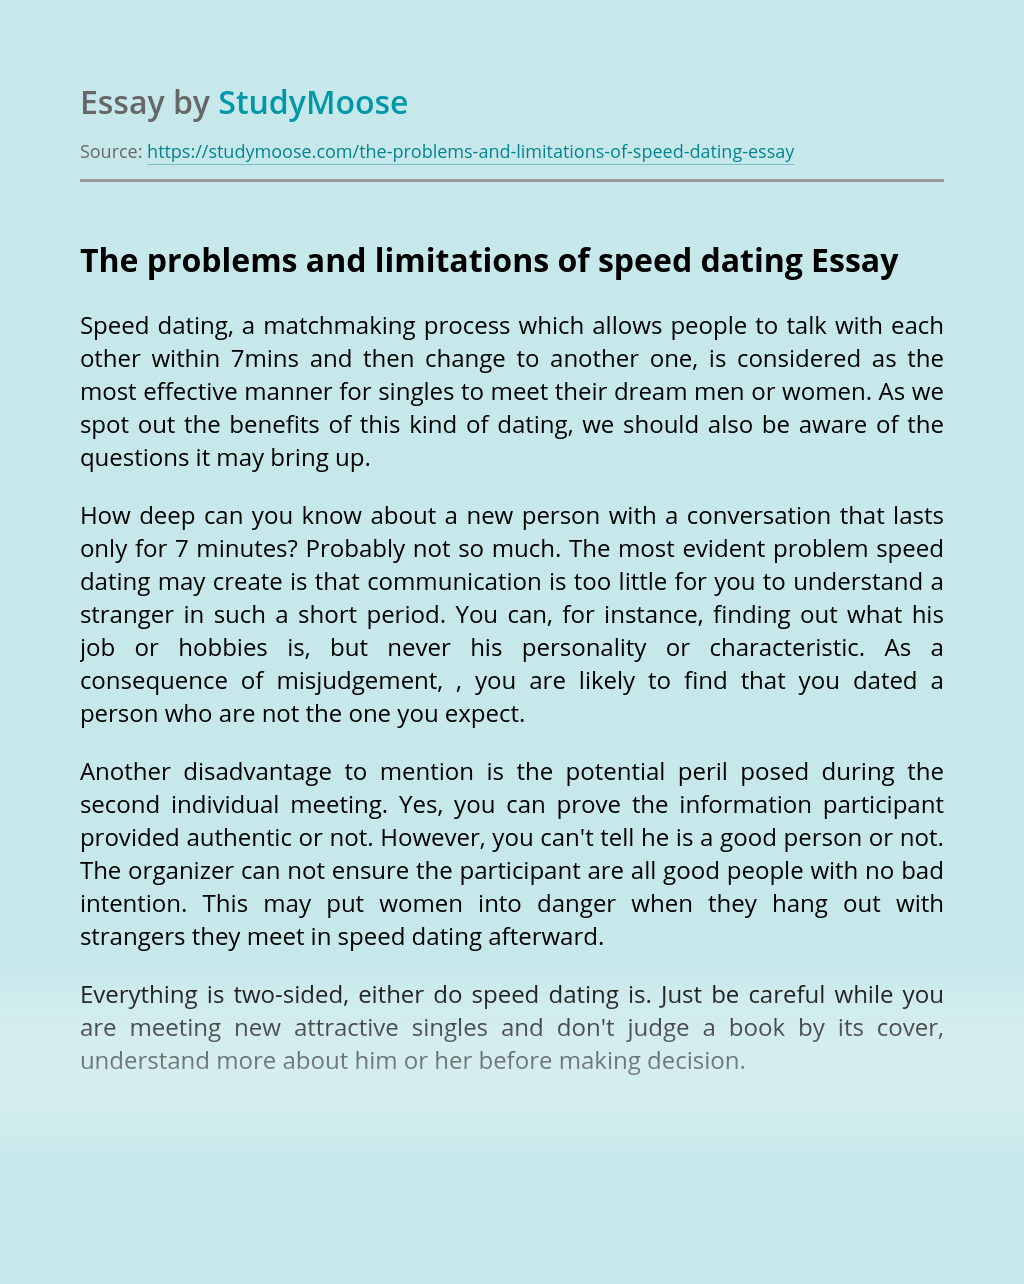 The problems and limitations of speed dating